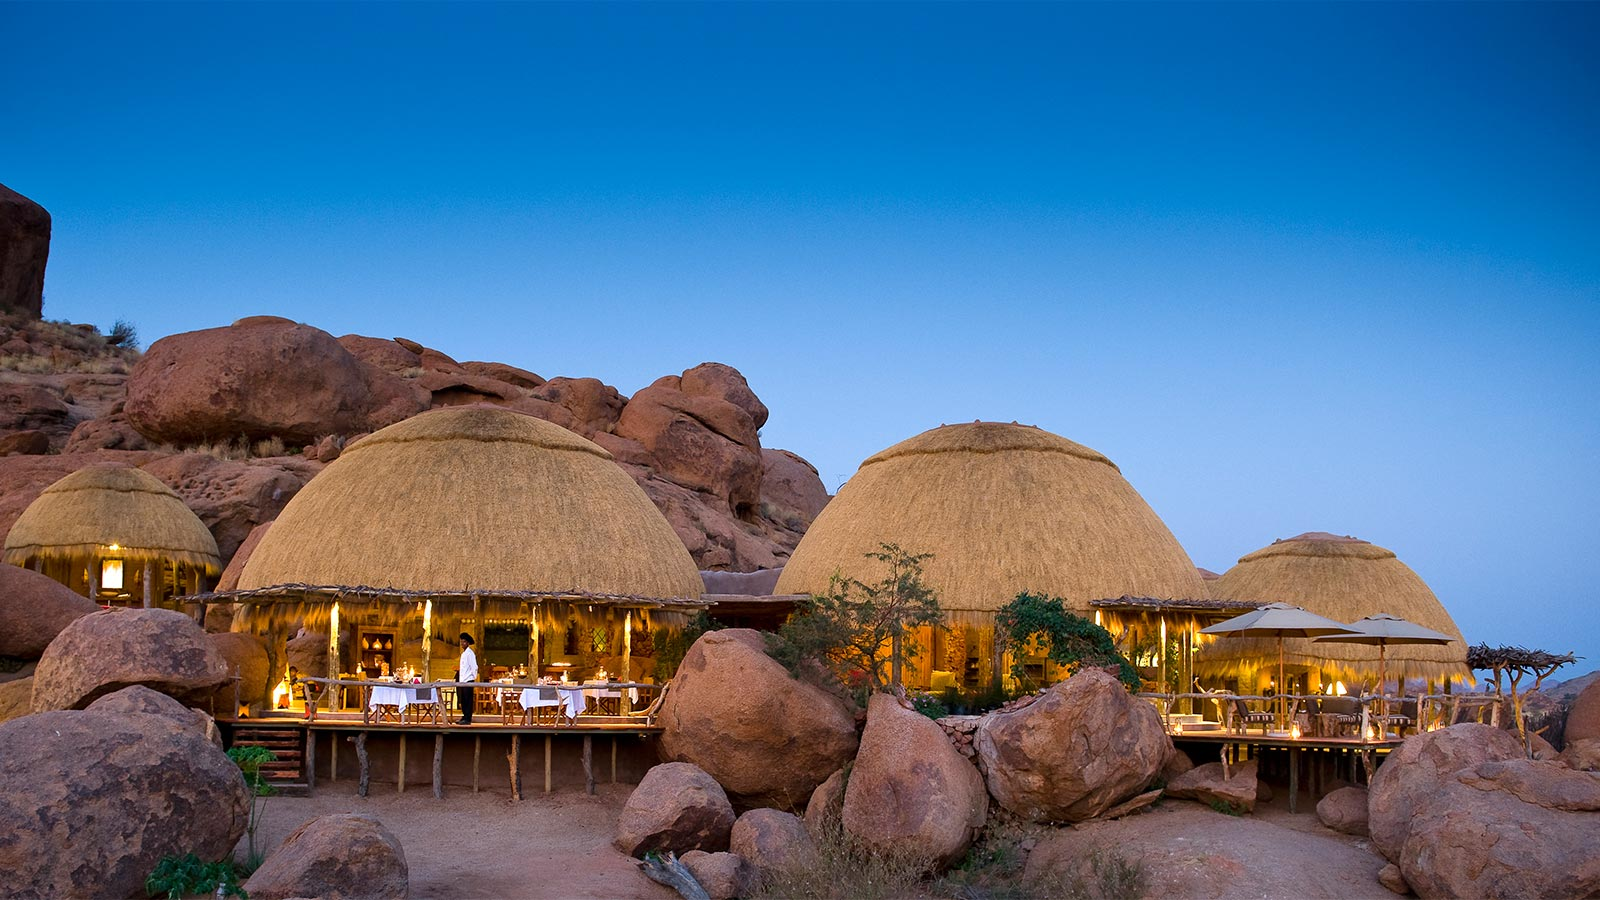 on our best Namibia safari you'll see domed thatch roofs of Camp Kipwe at sunset